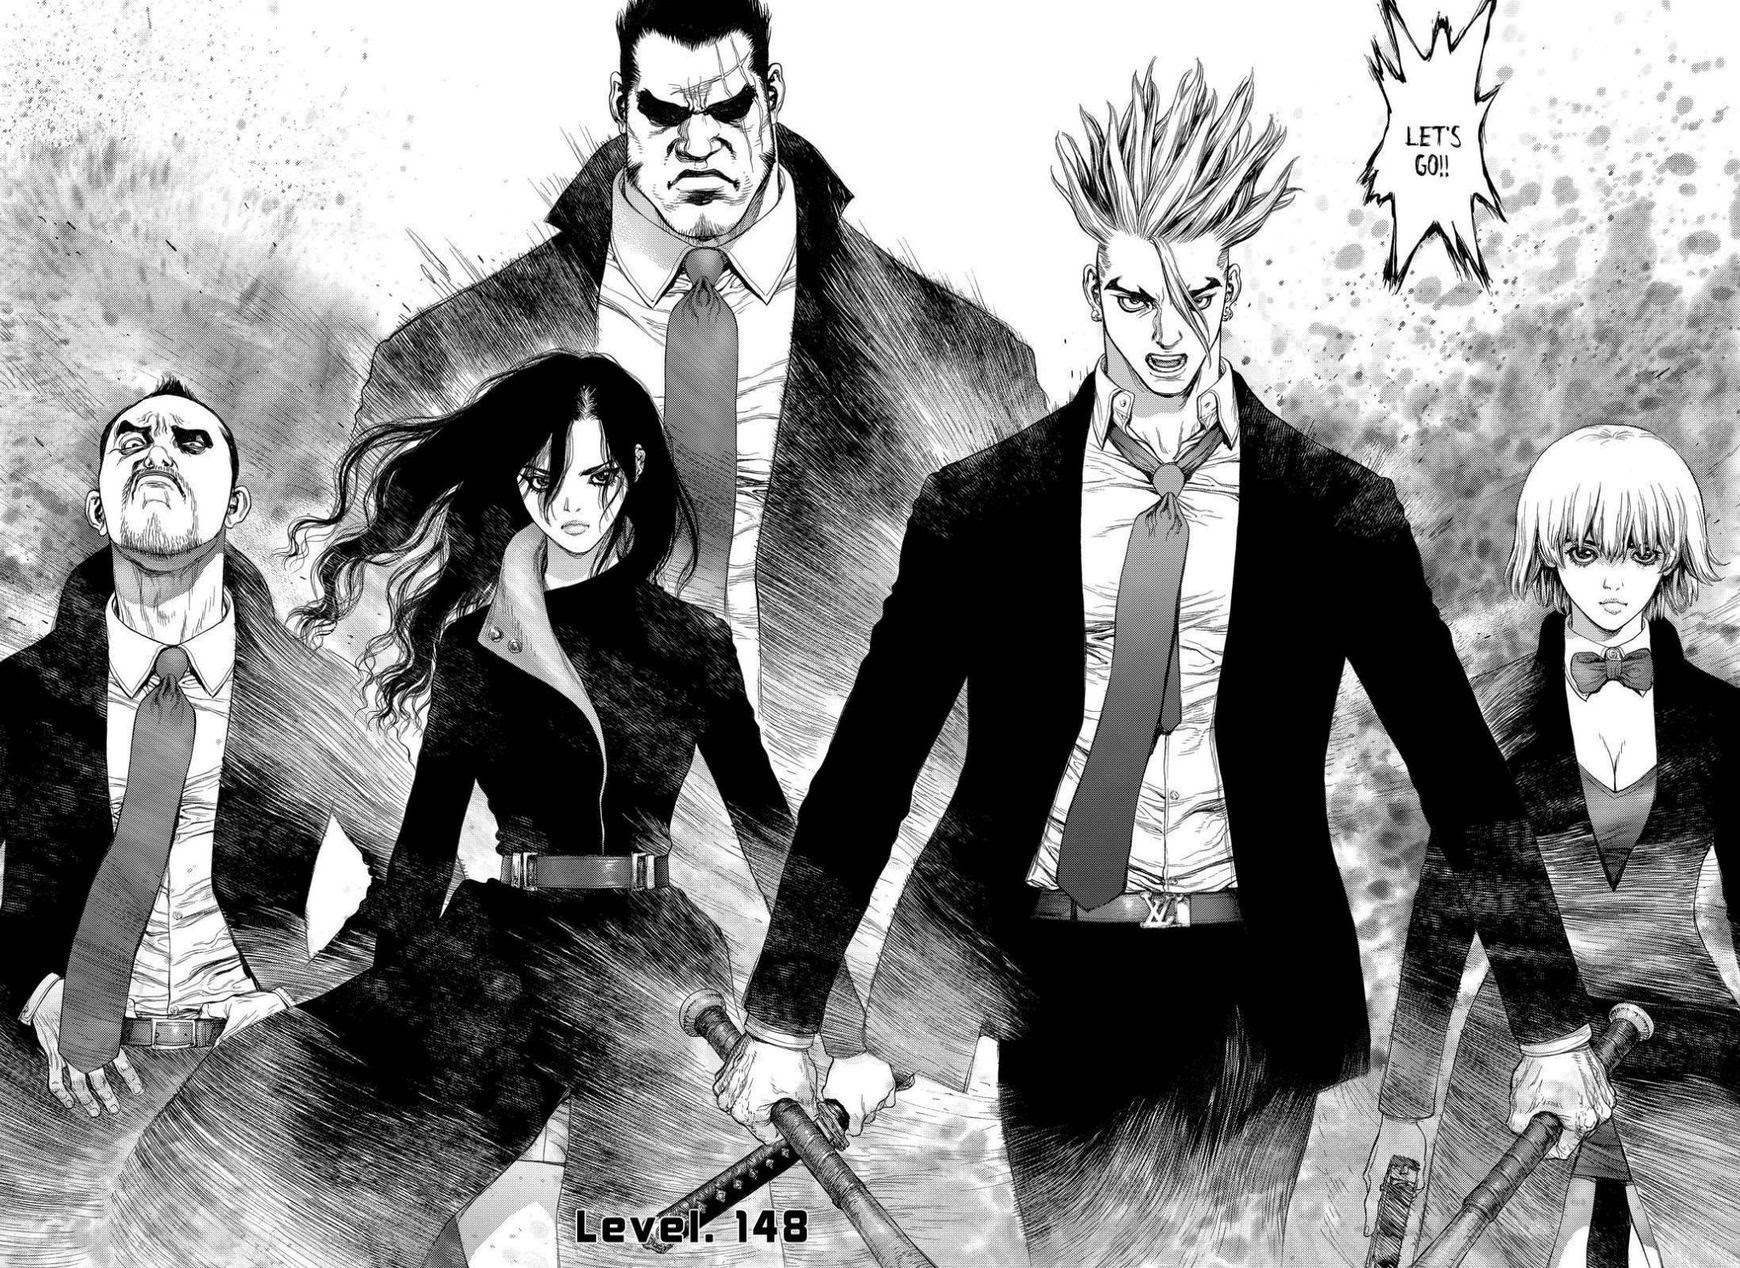 Anime 1740x1268 Sun Ken Rock manga monochrome anime girls anime boys anime